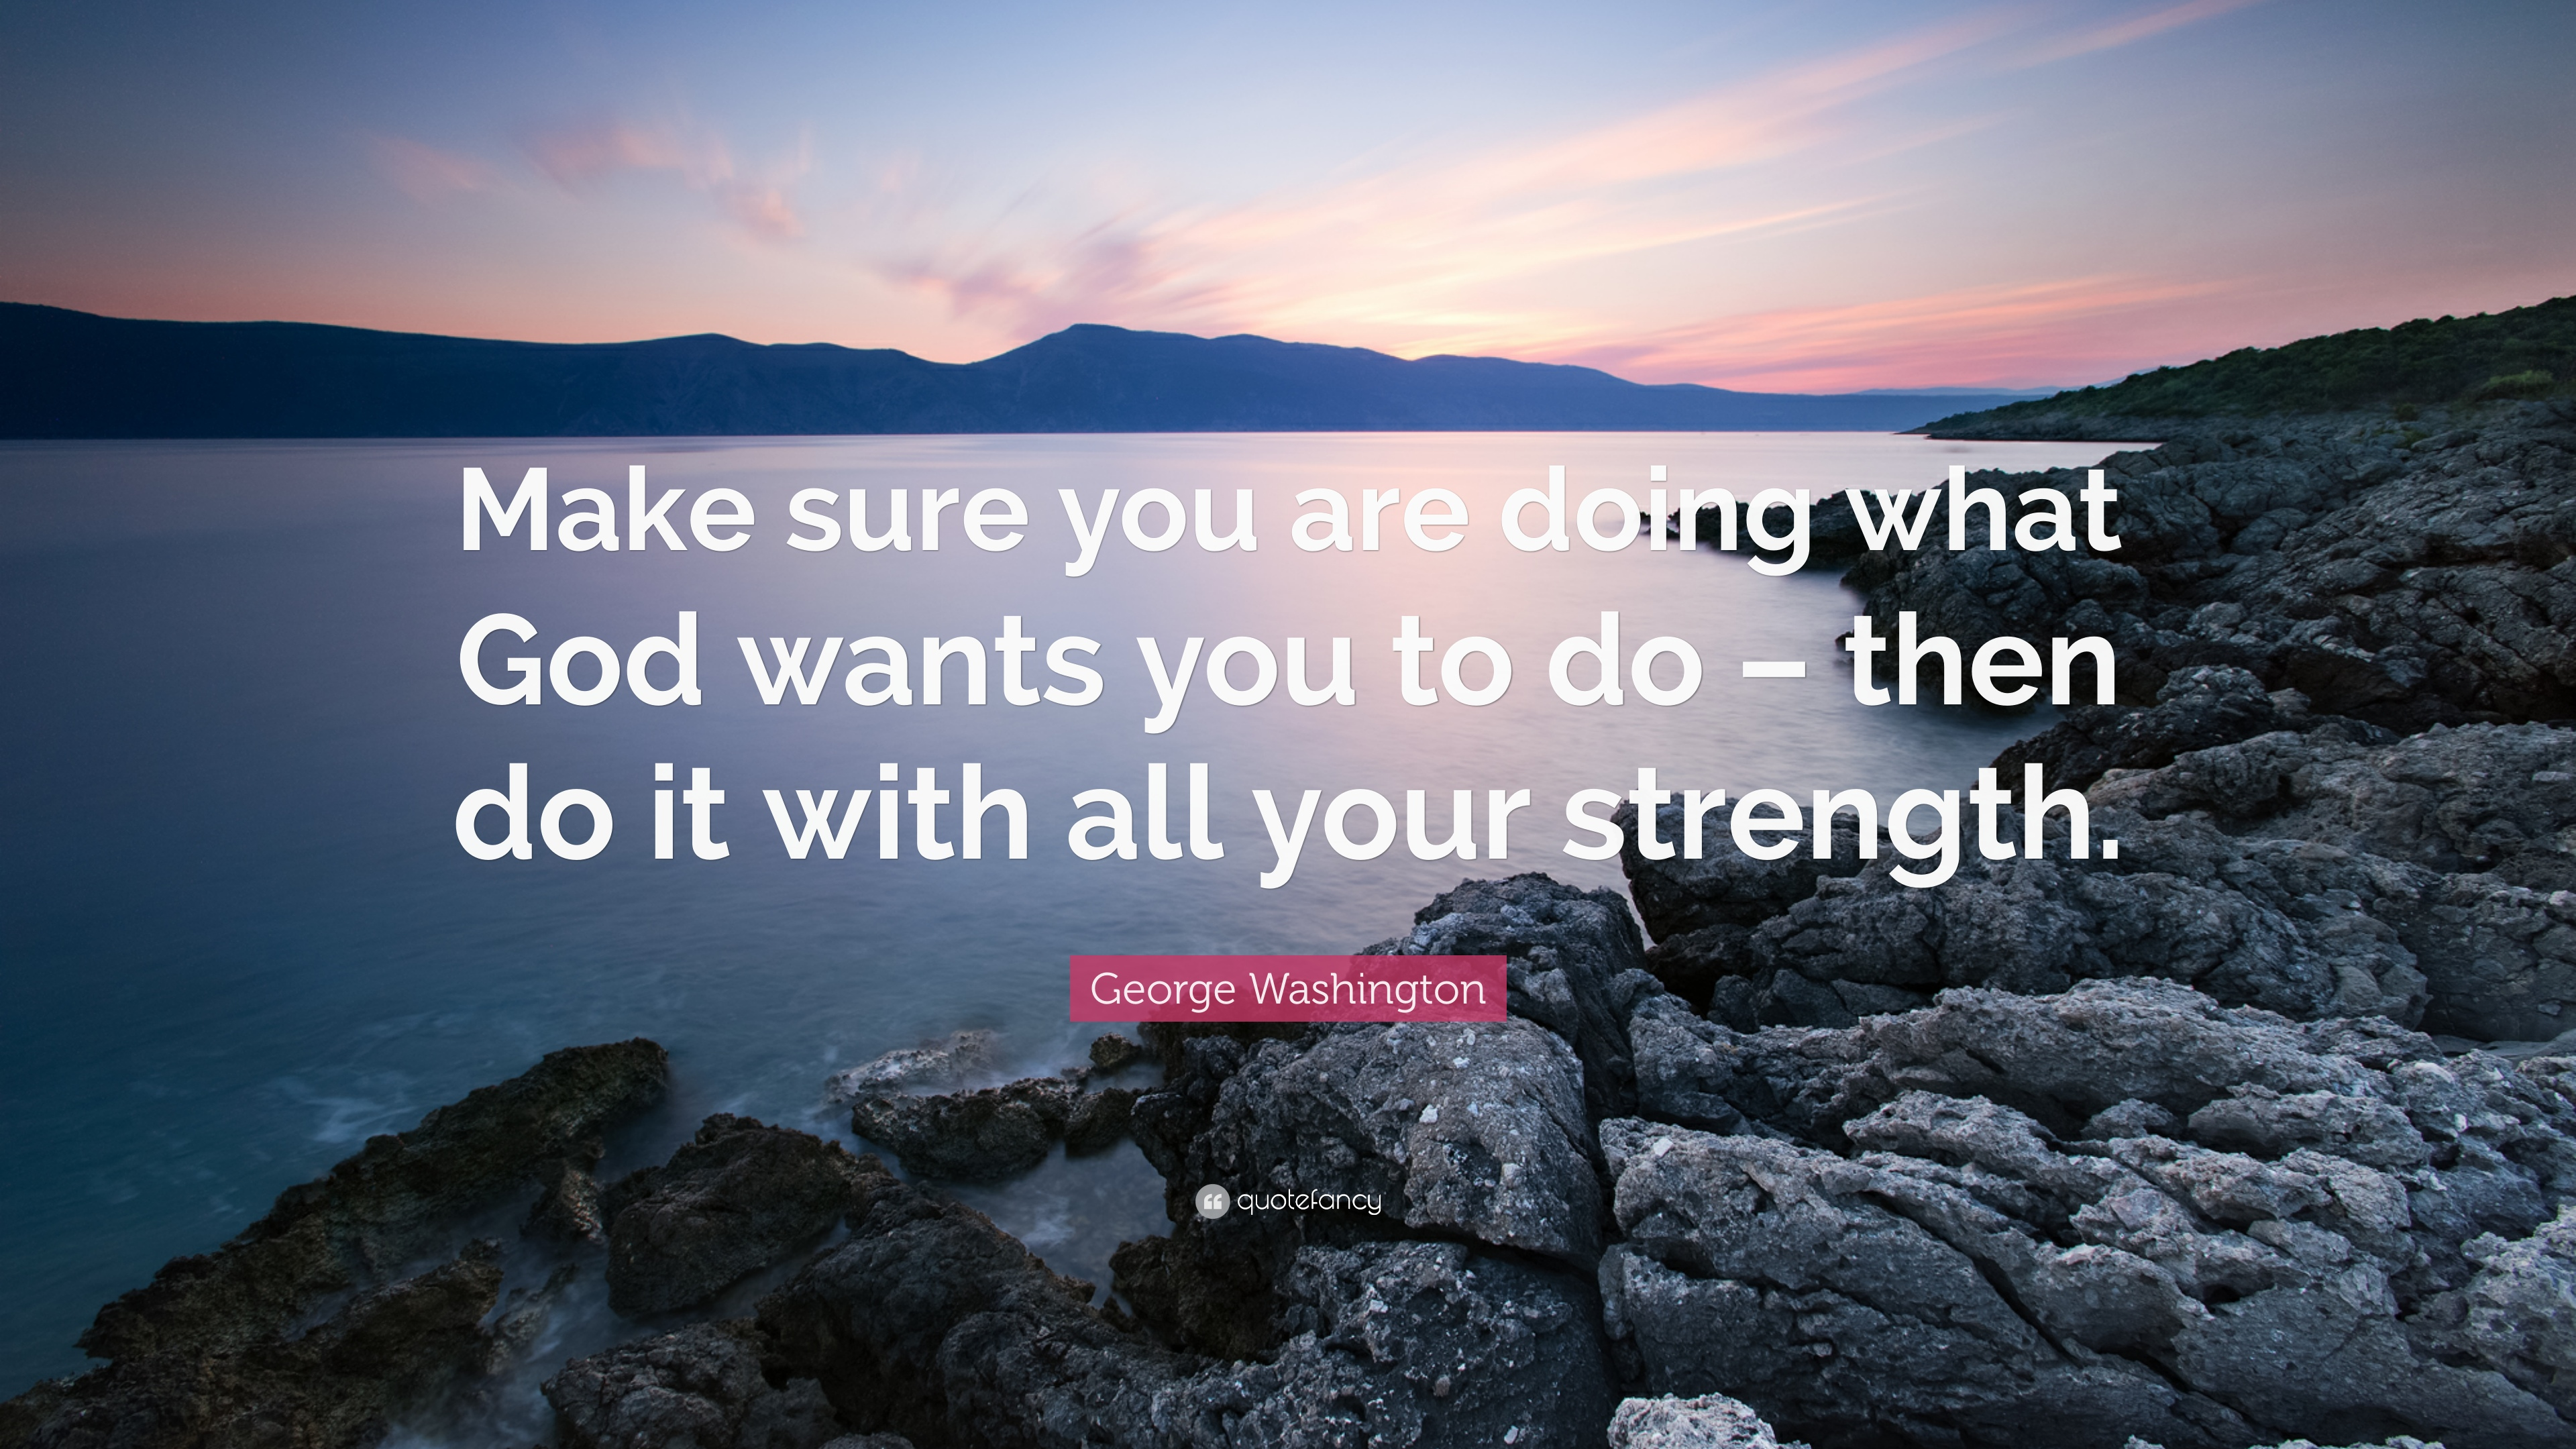 George Washington Quote Make Sure You Are Doing What God Wants You